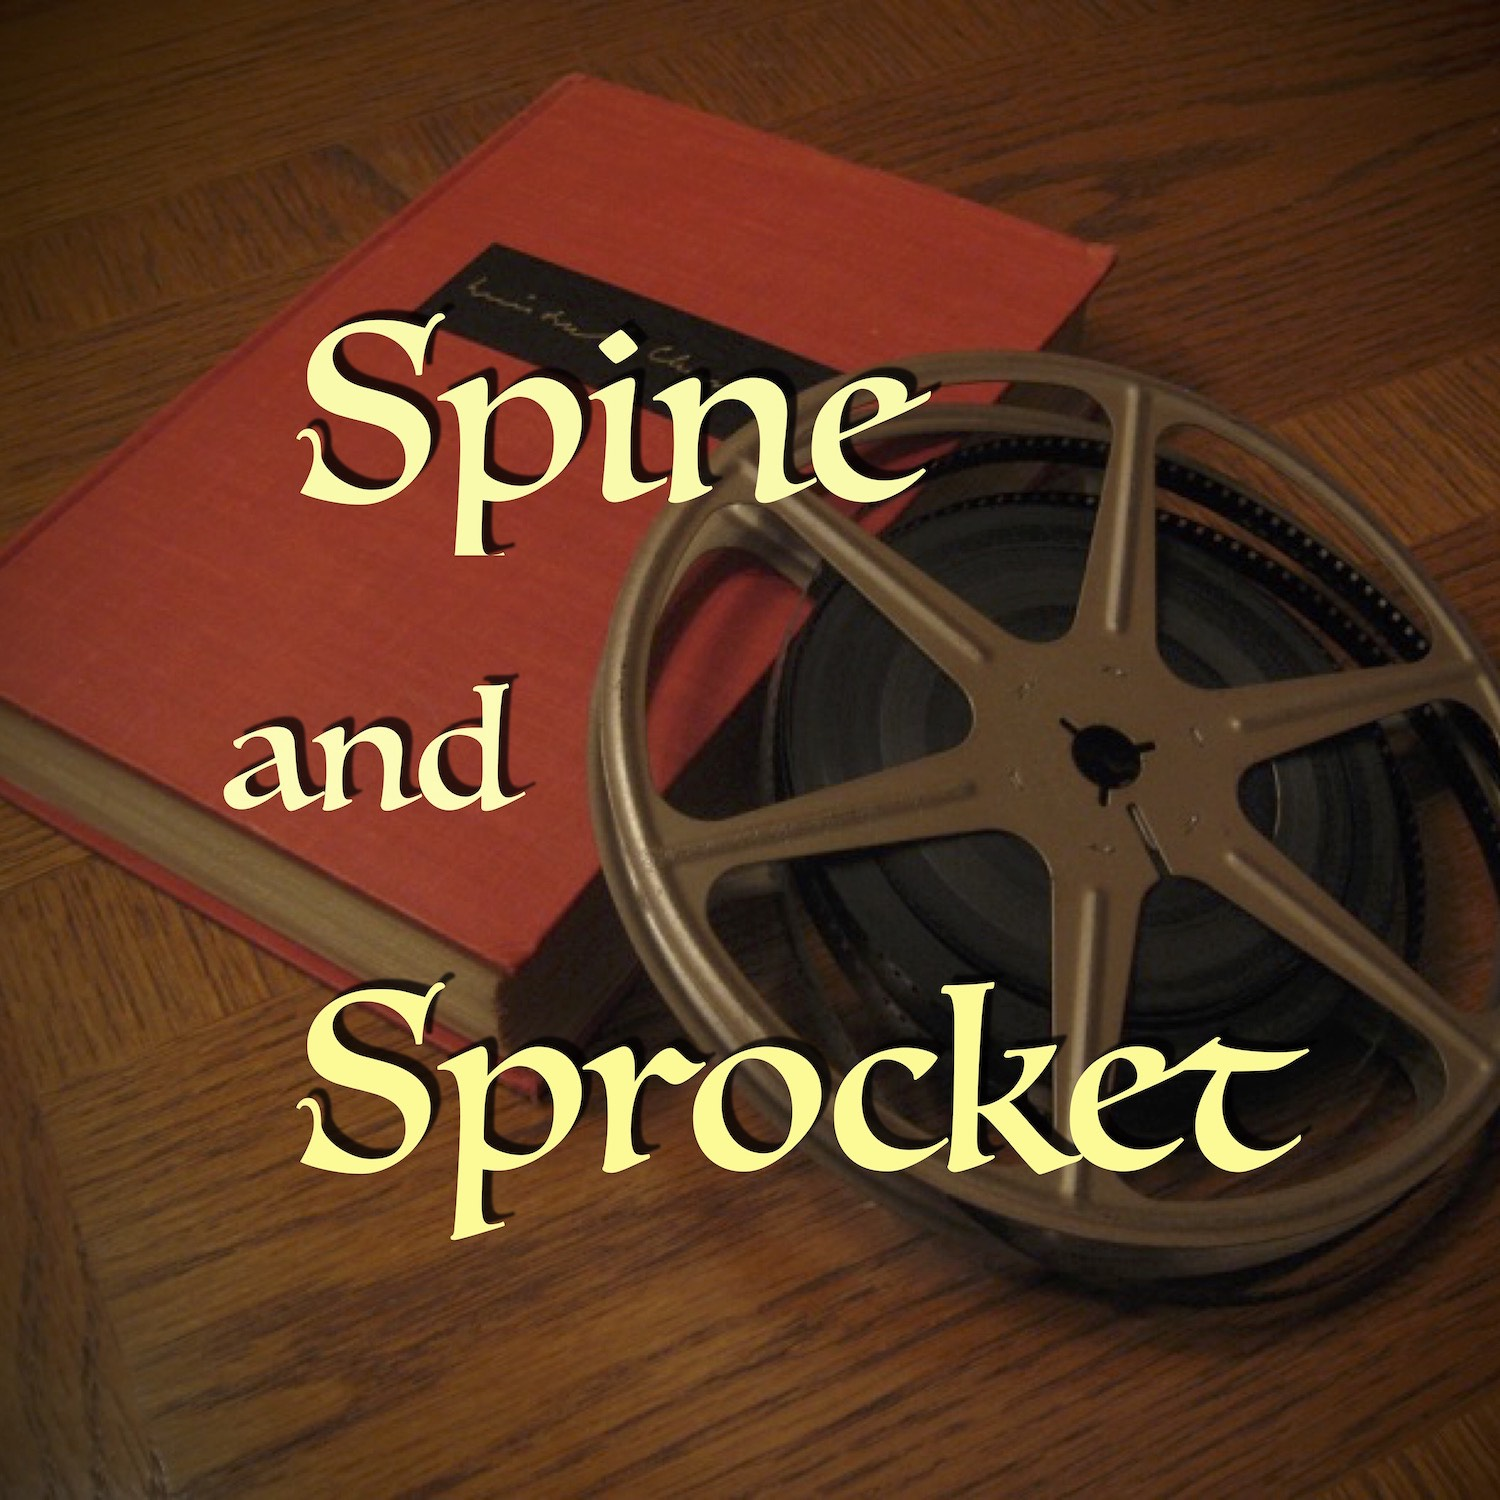 Spine and Sprocket